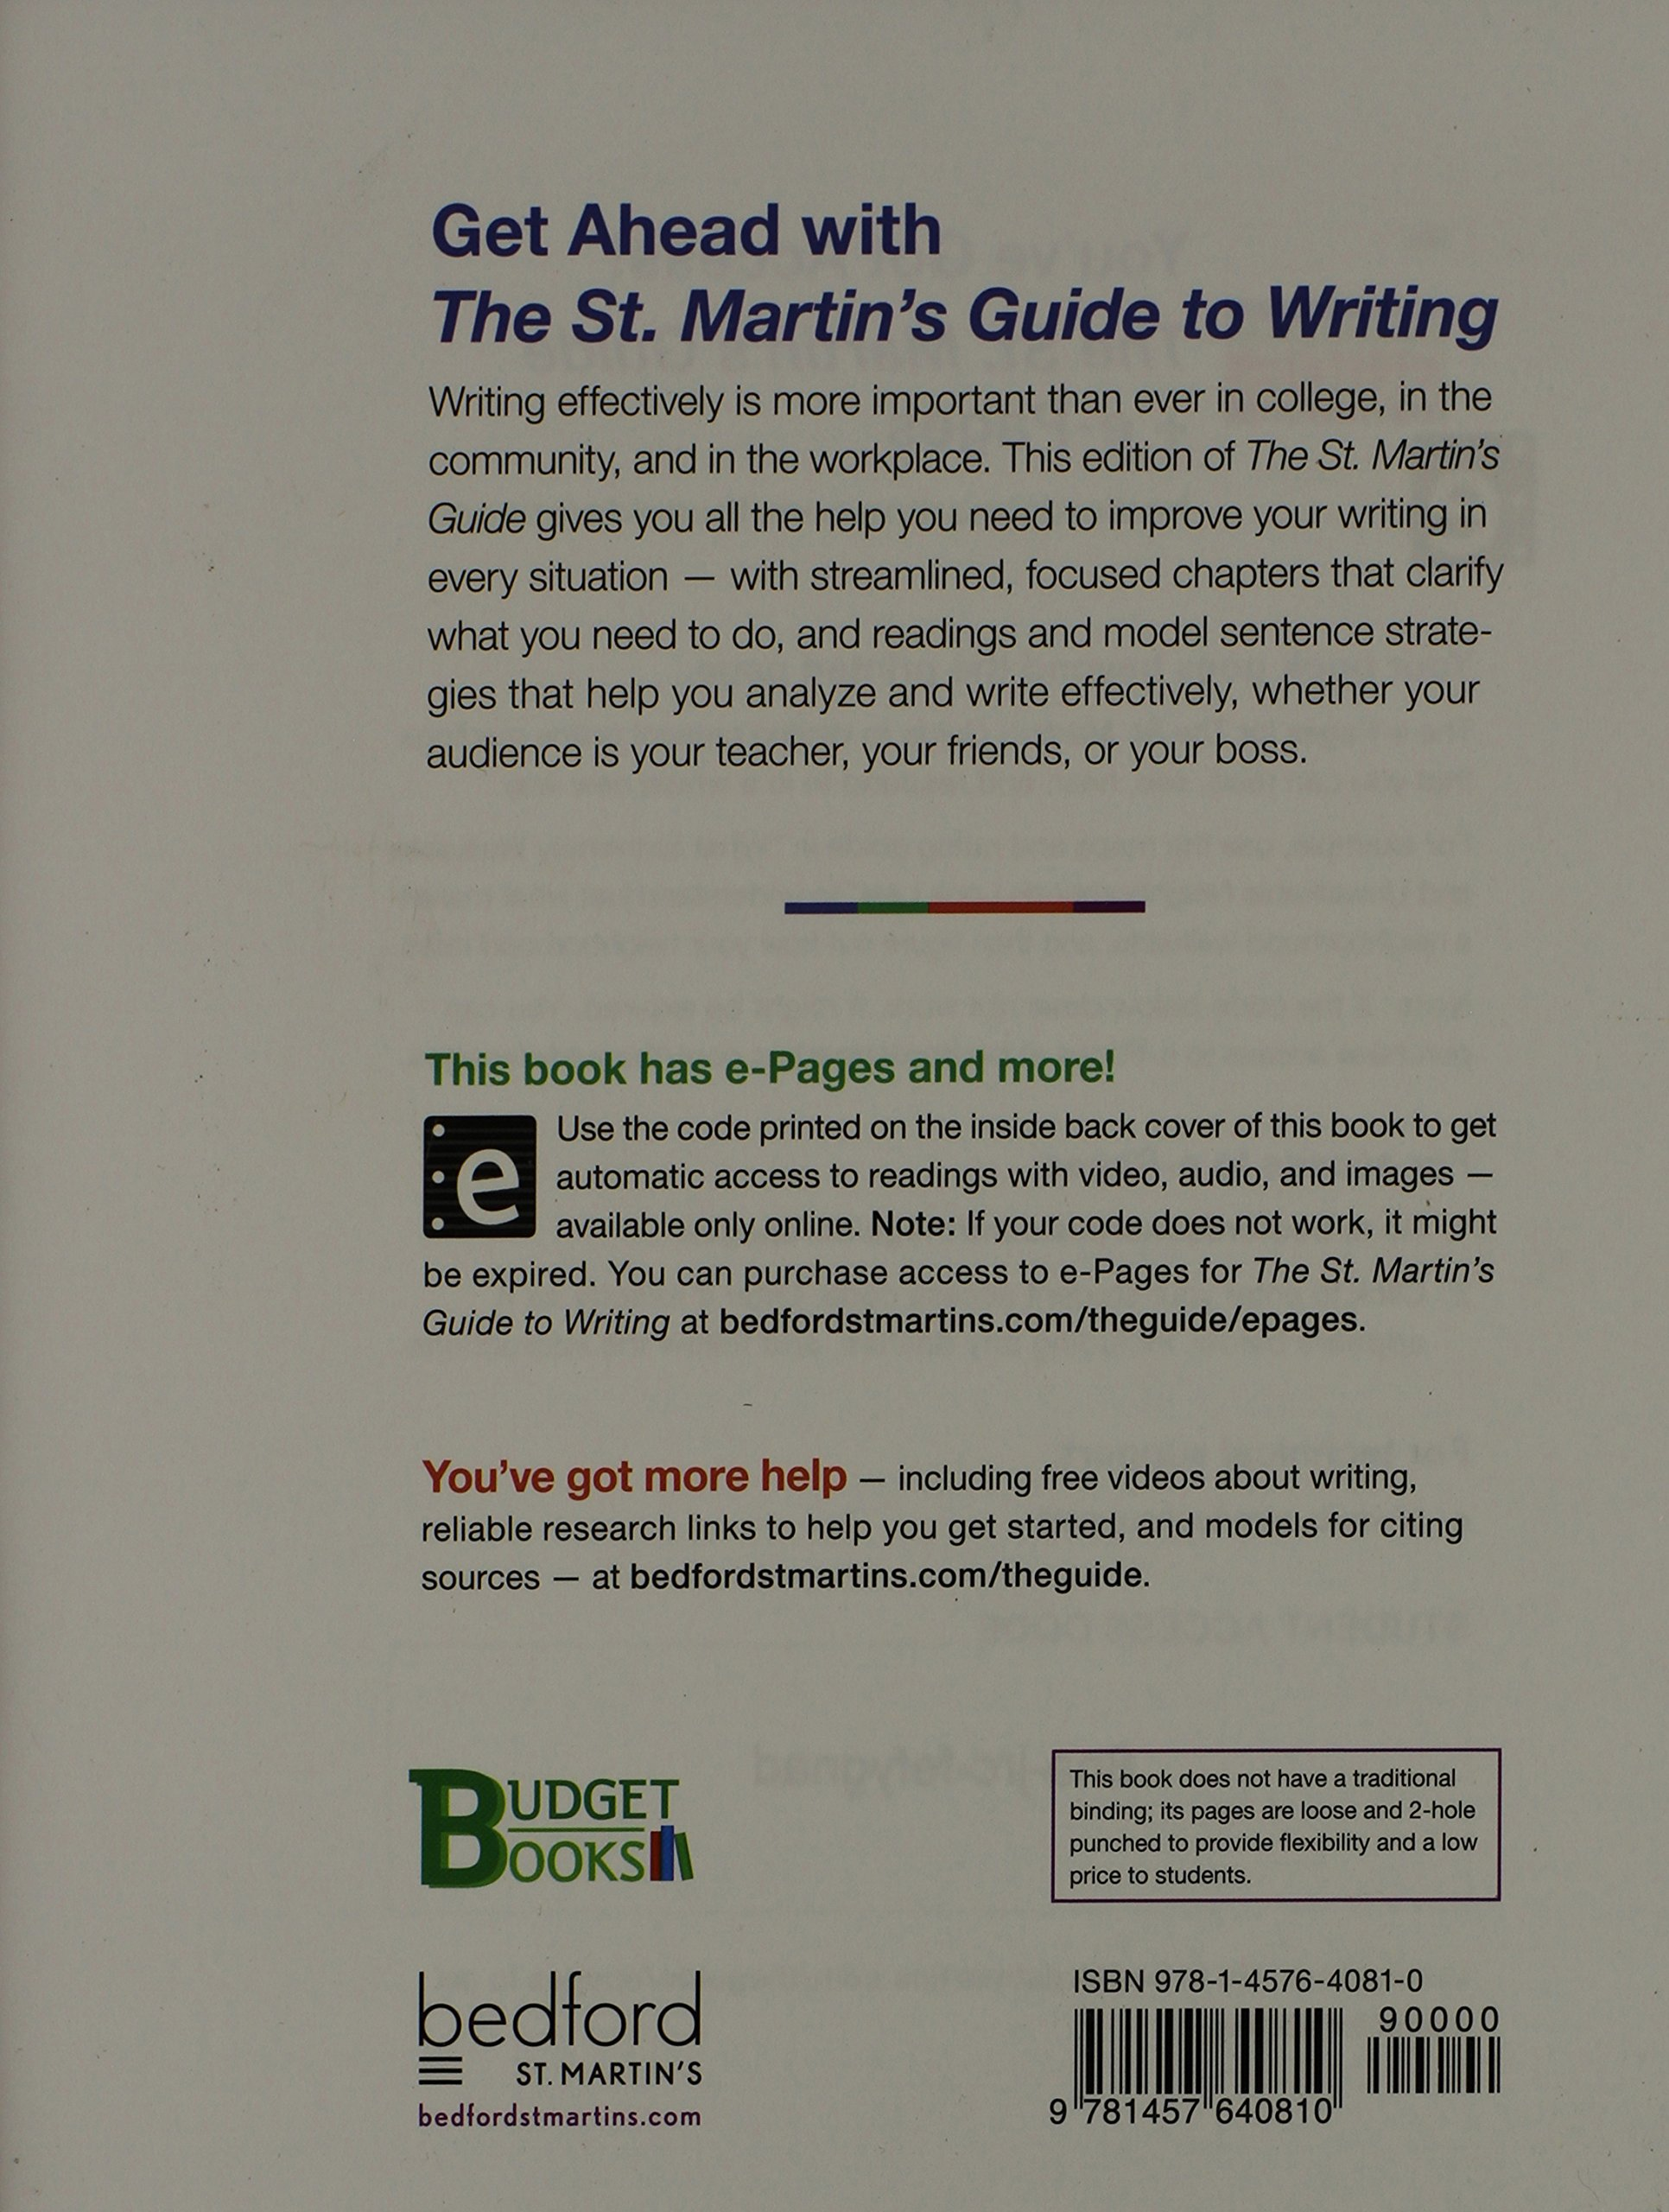 Buy the st martins guide to writing budget books book online buy the st martins guide to writing budget books book online at low prices in india the st martins guide to writing budget books reviews ratings fandeluxe